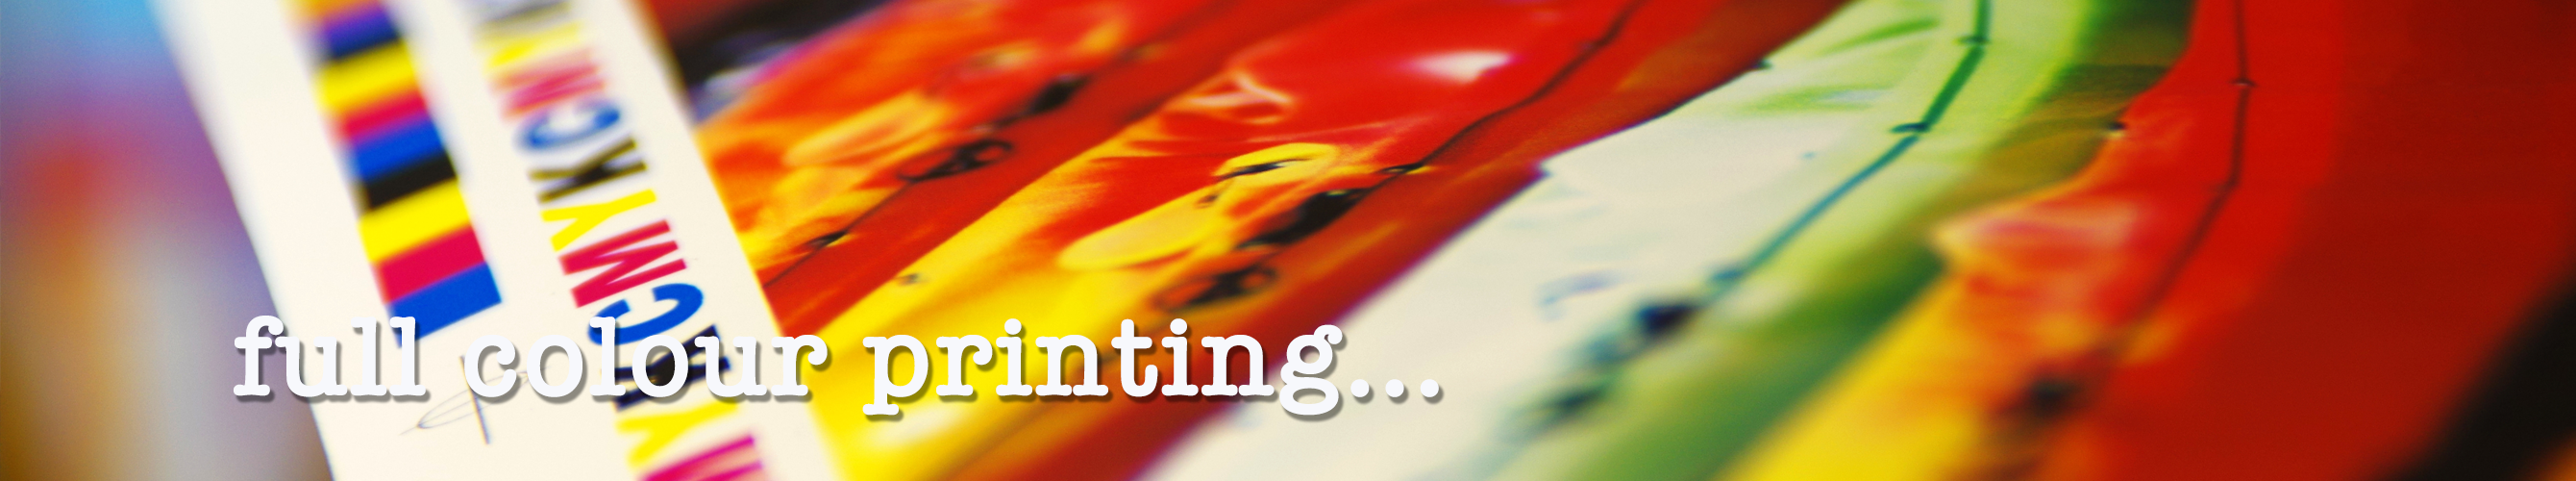 full colour printing north wales